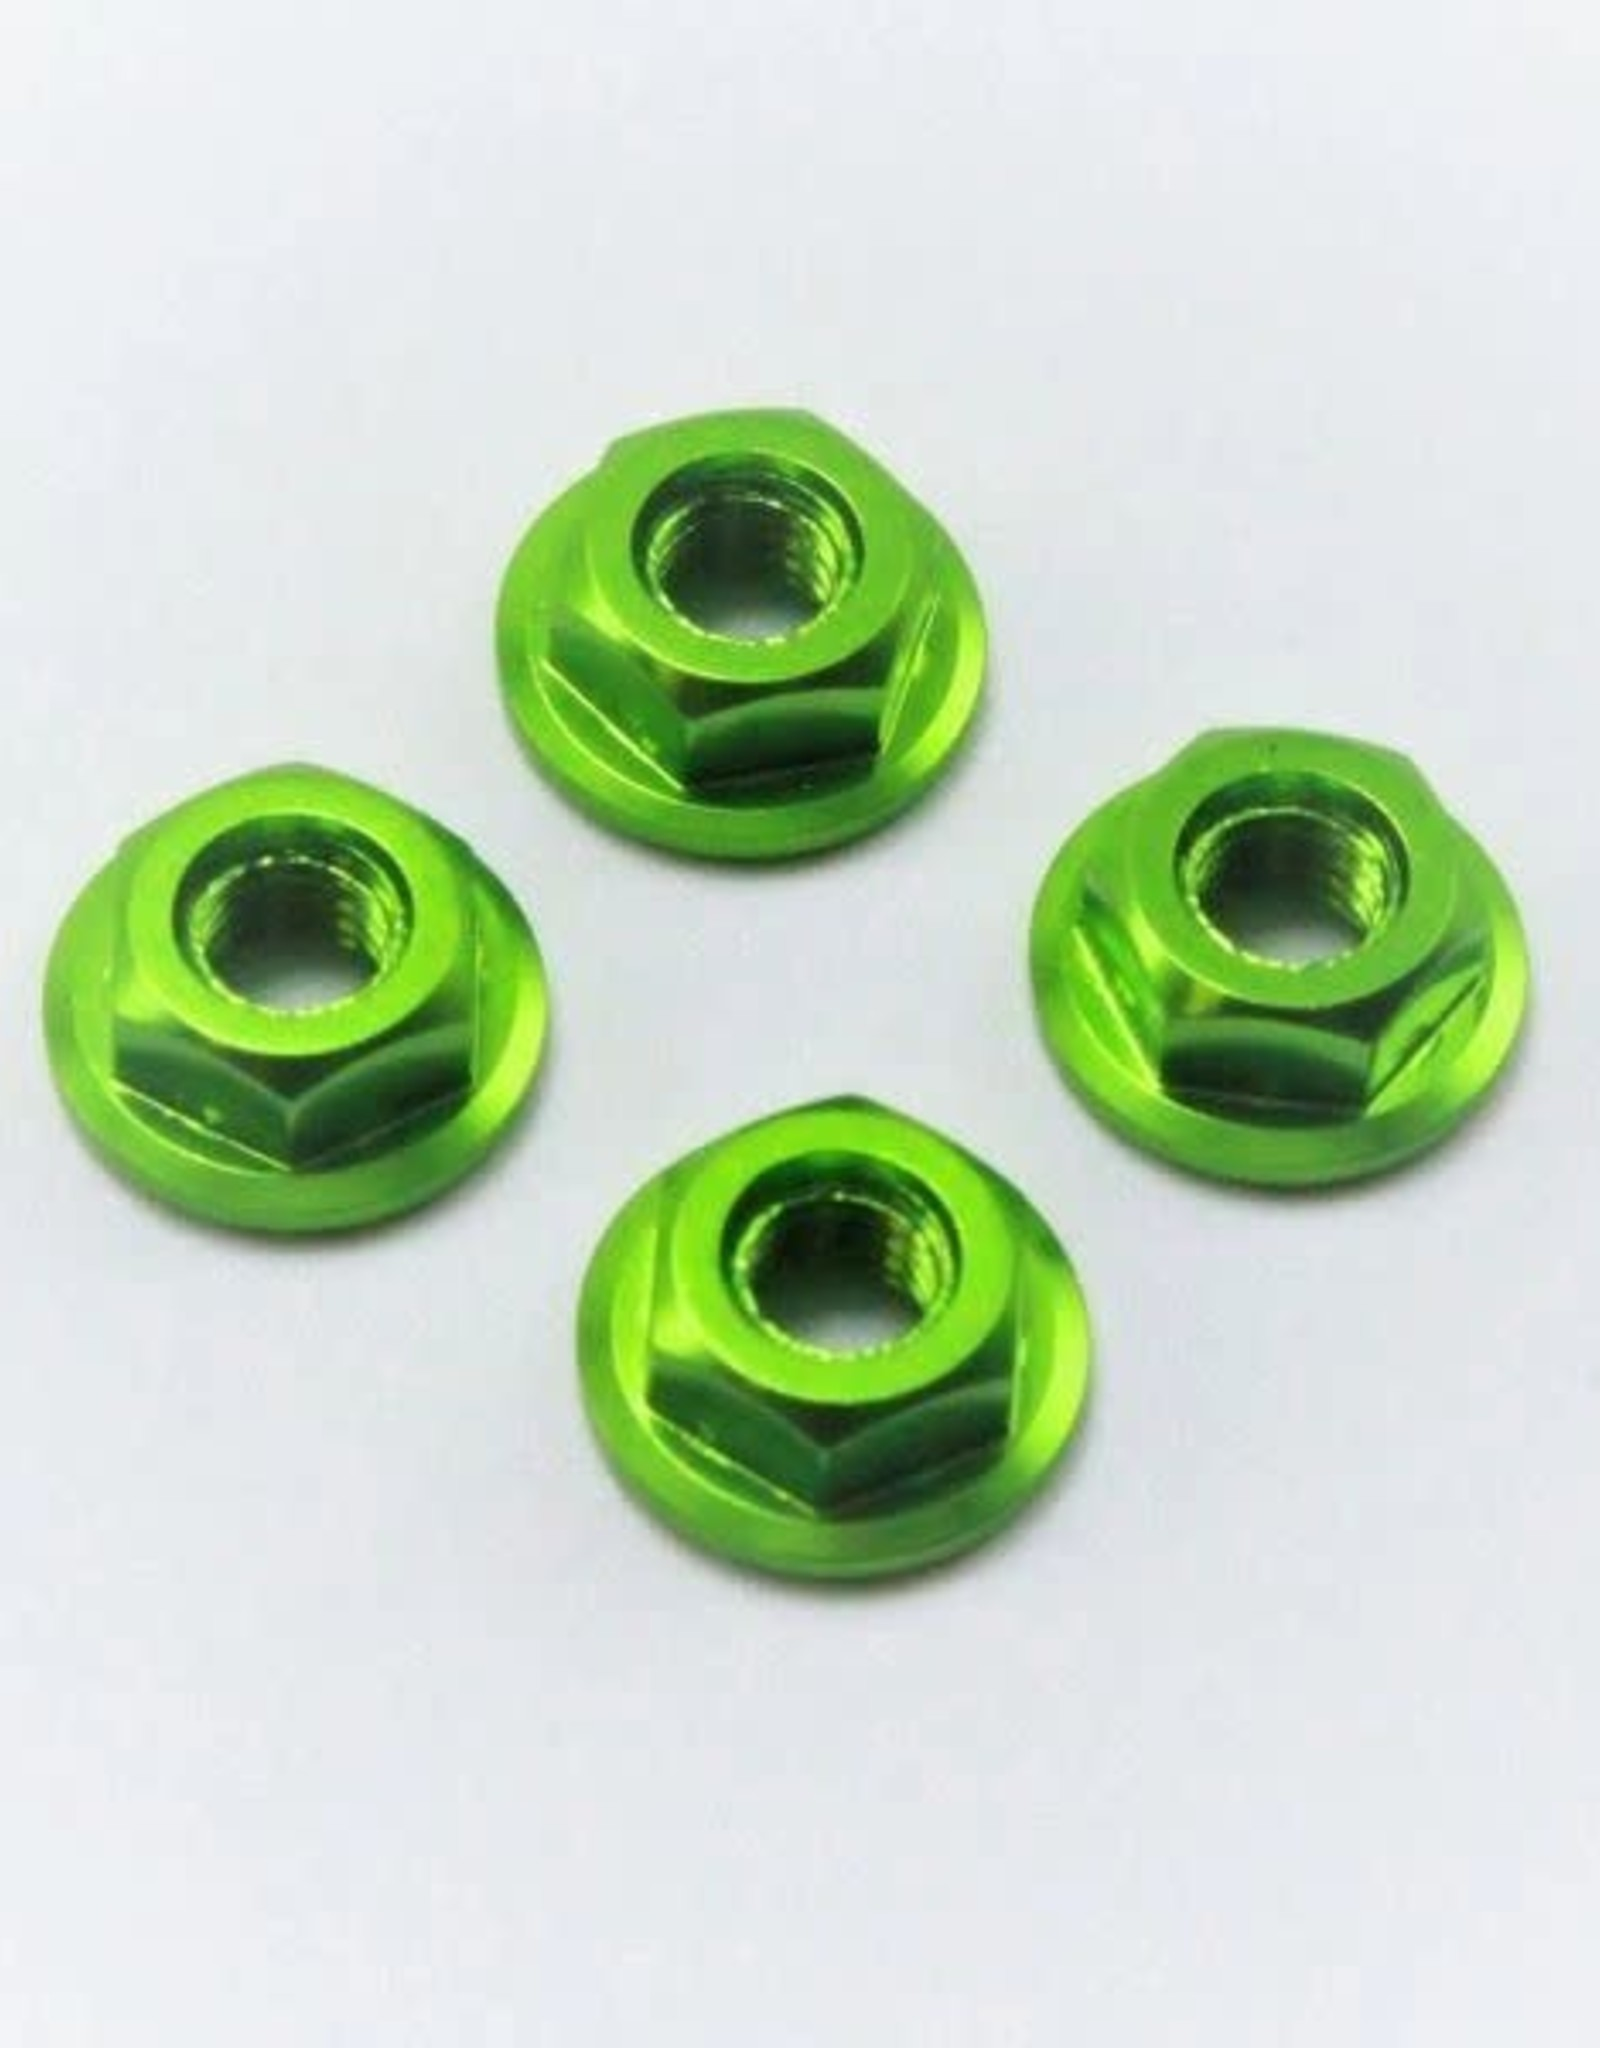 175RC 175RC Serrated Wheel Nuts Green